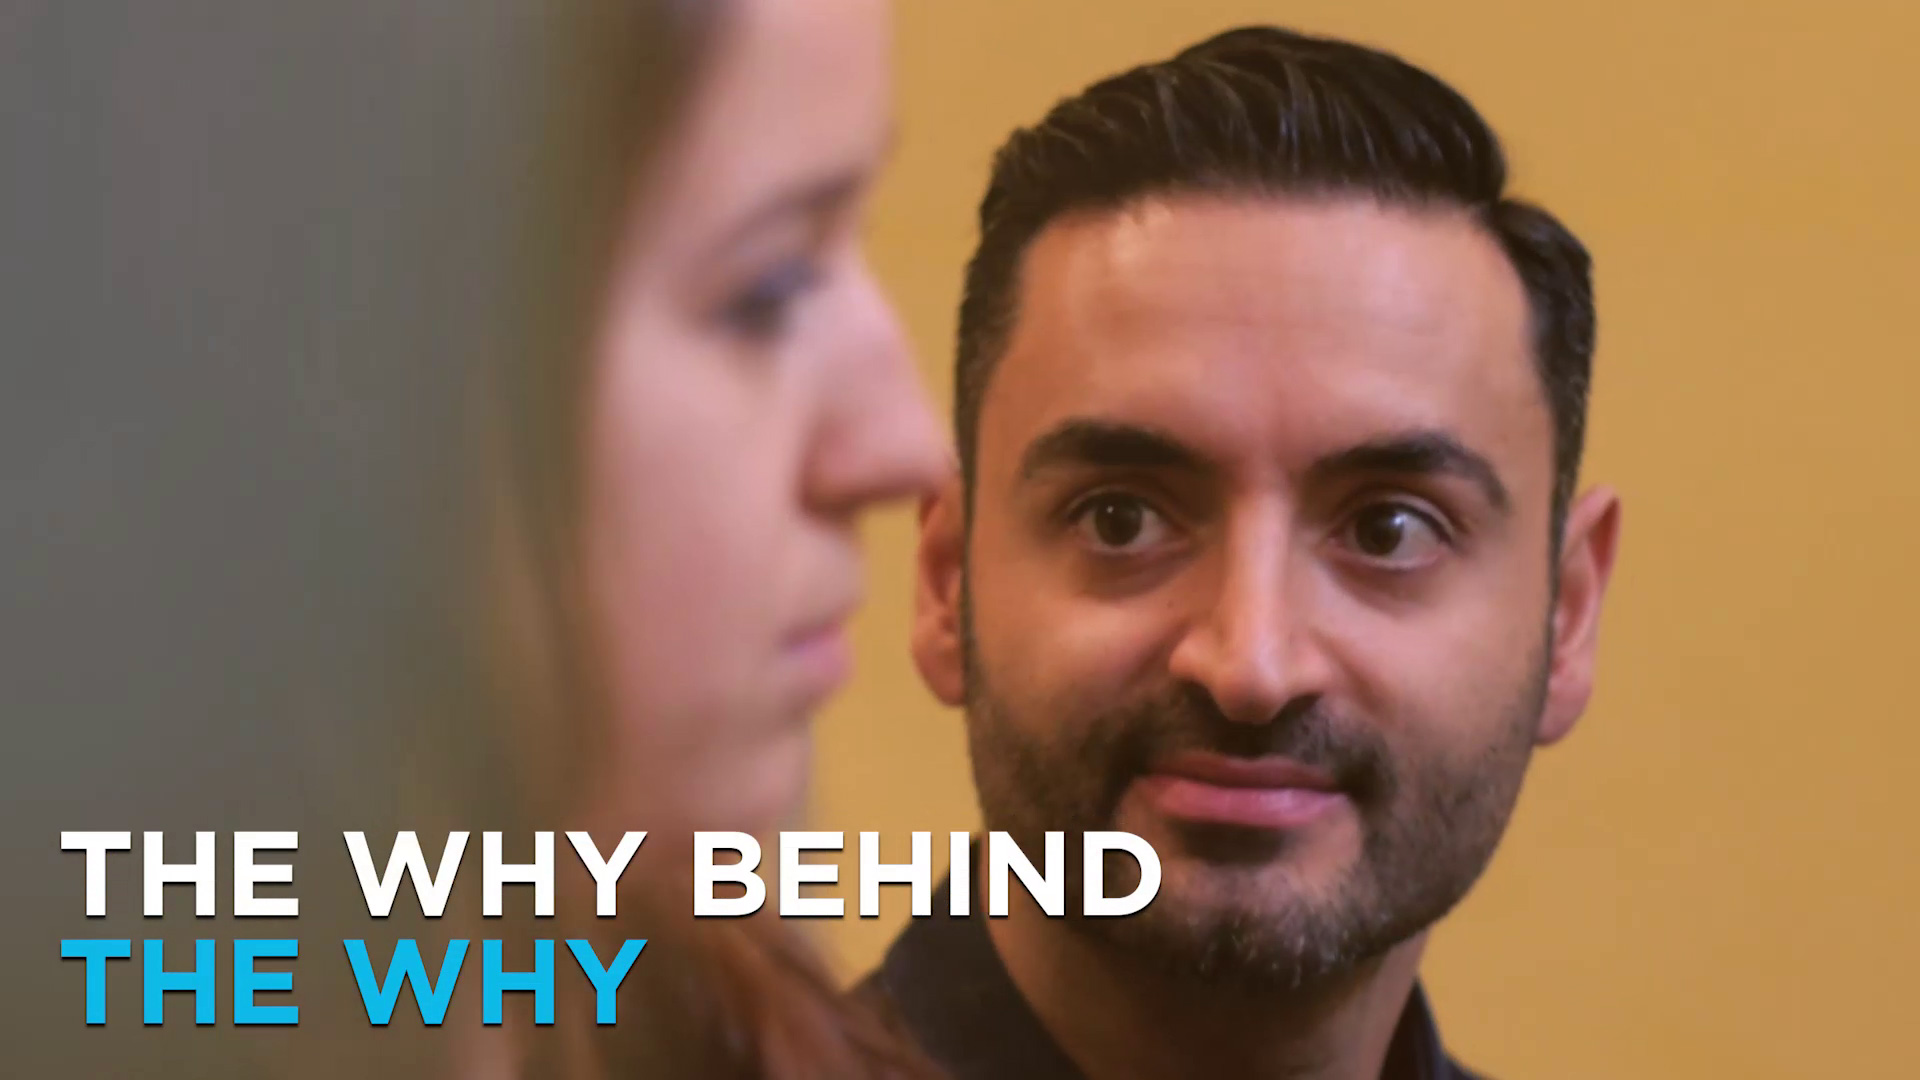 The Why Behind the Why